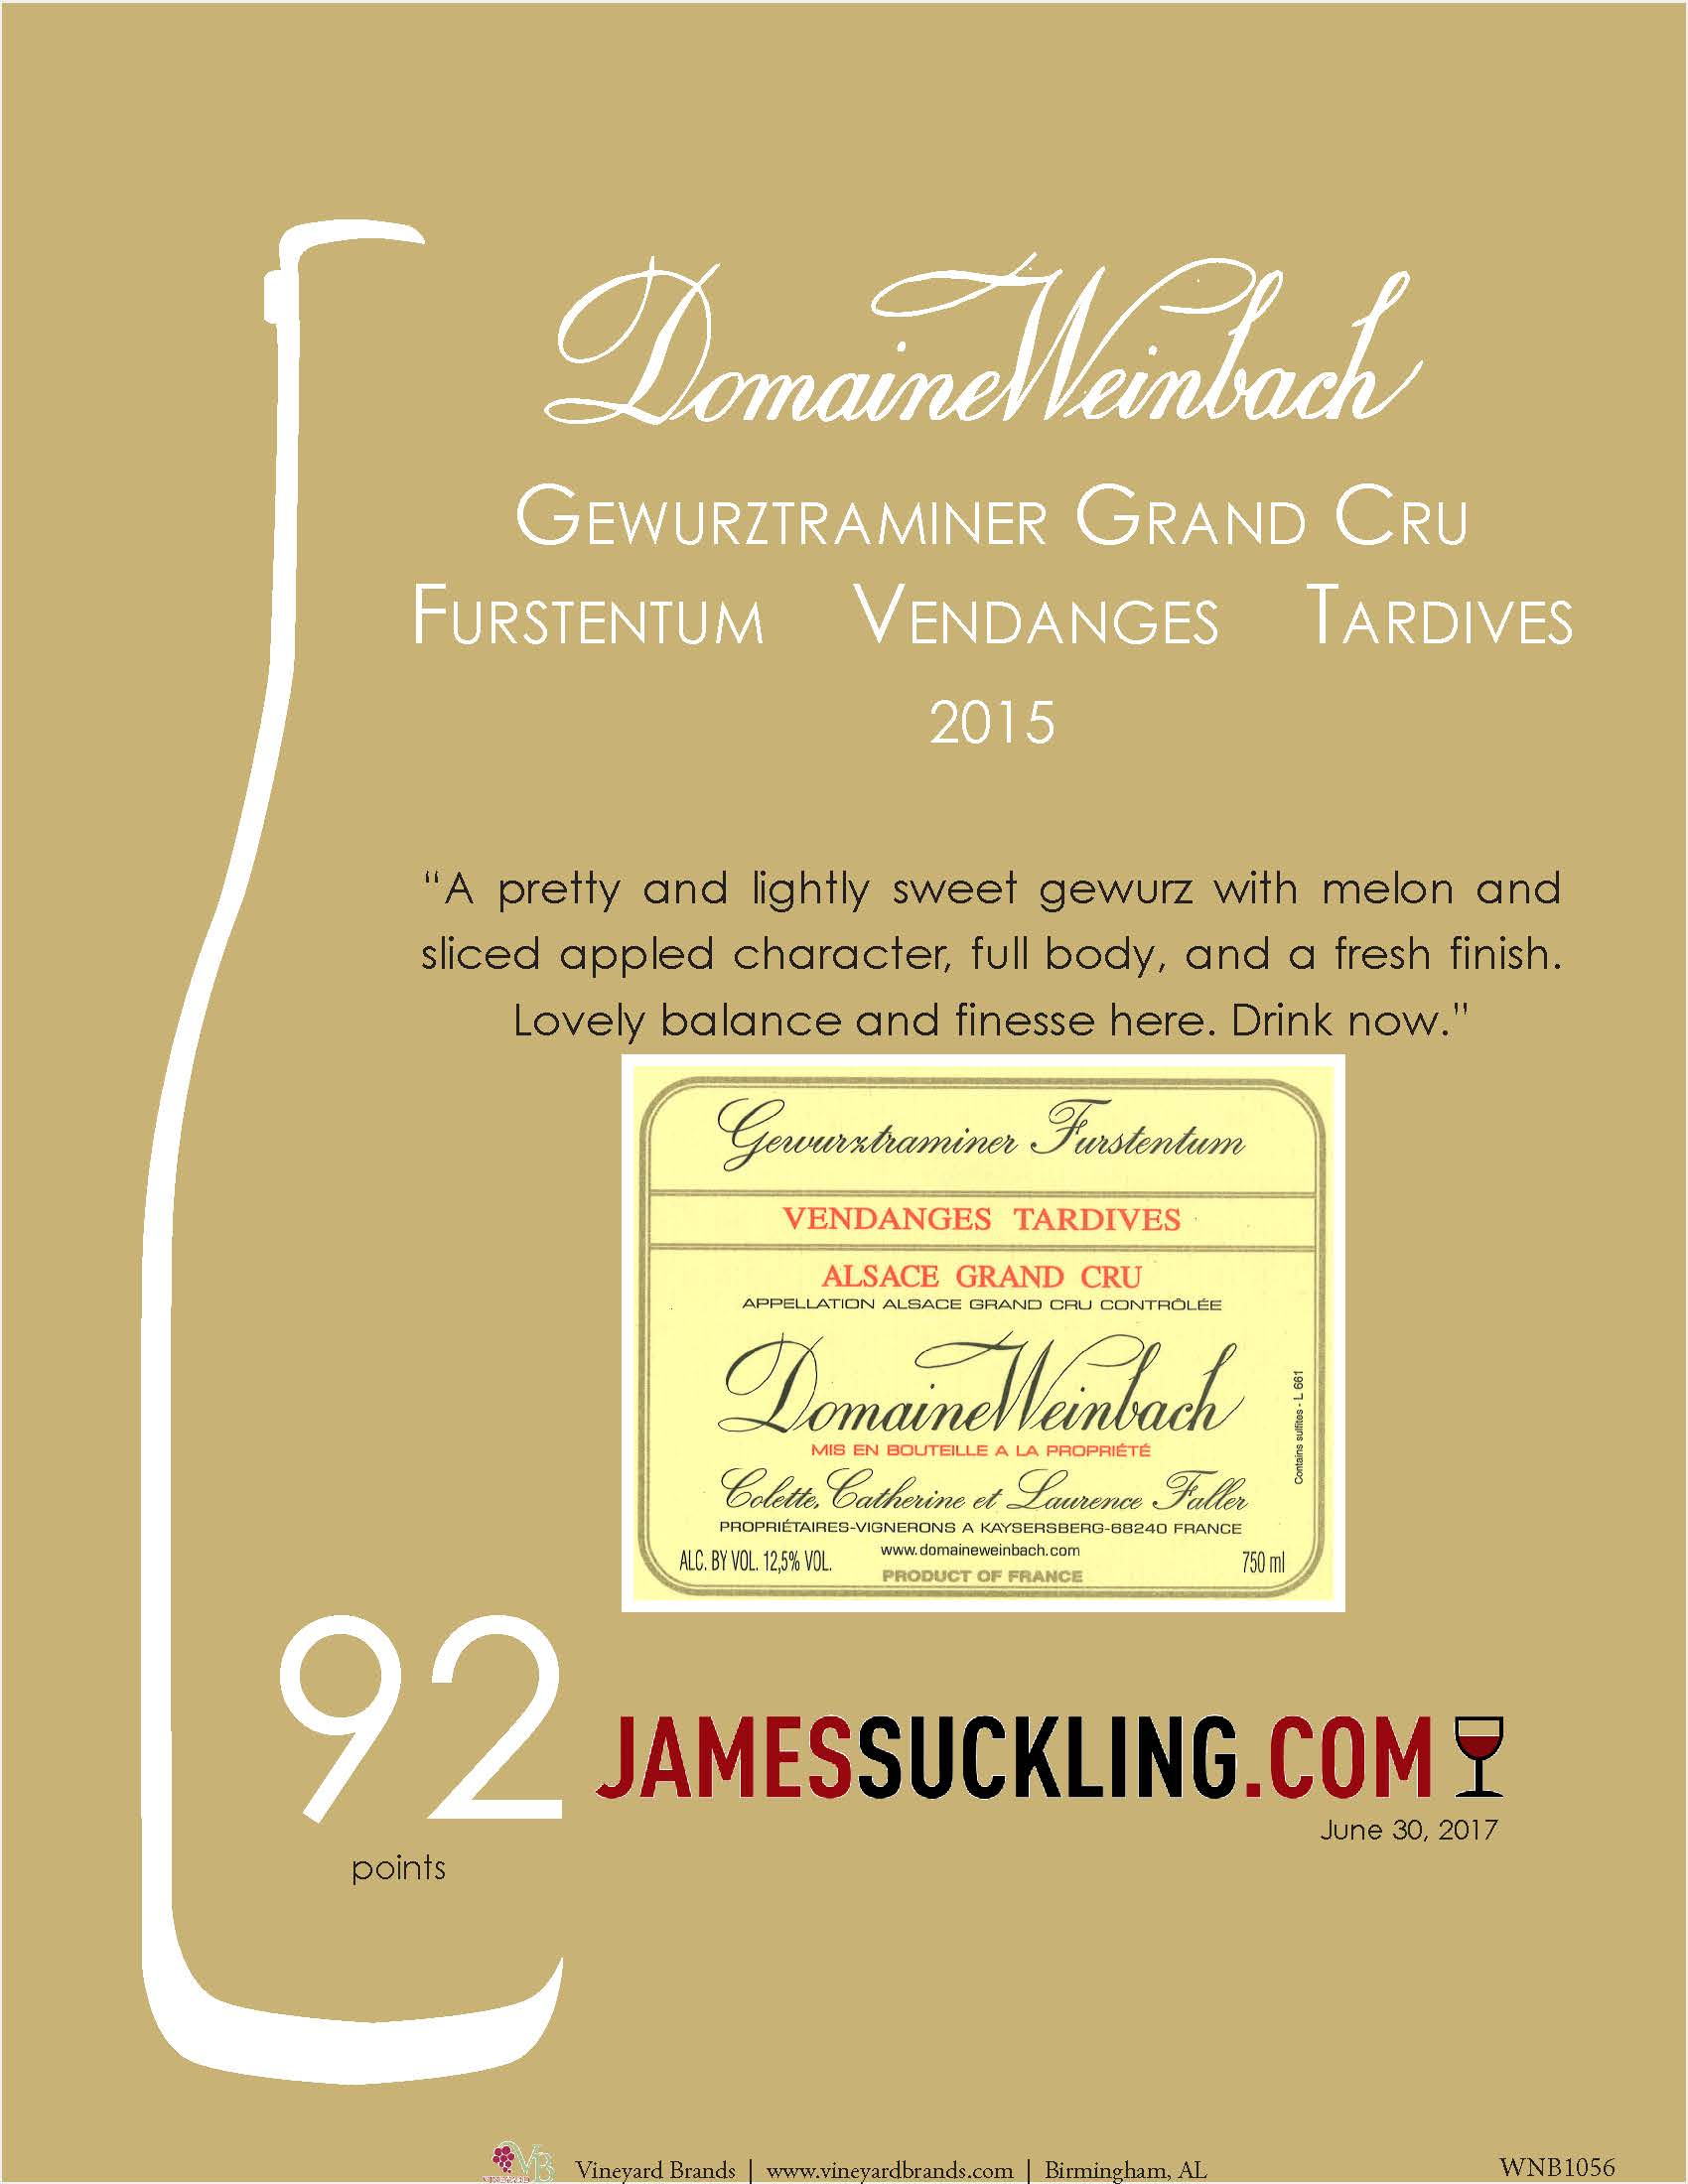 Weinbach Gewurztraminer Grand Cru Furstentum Vendanges Tardives 2015.jpg